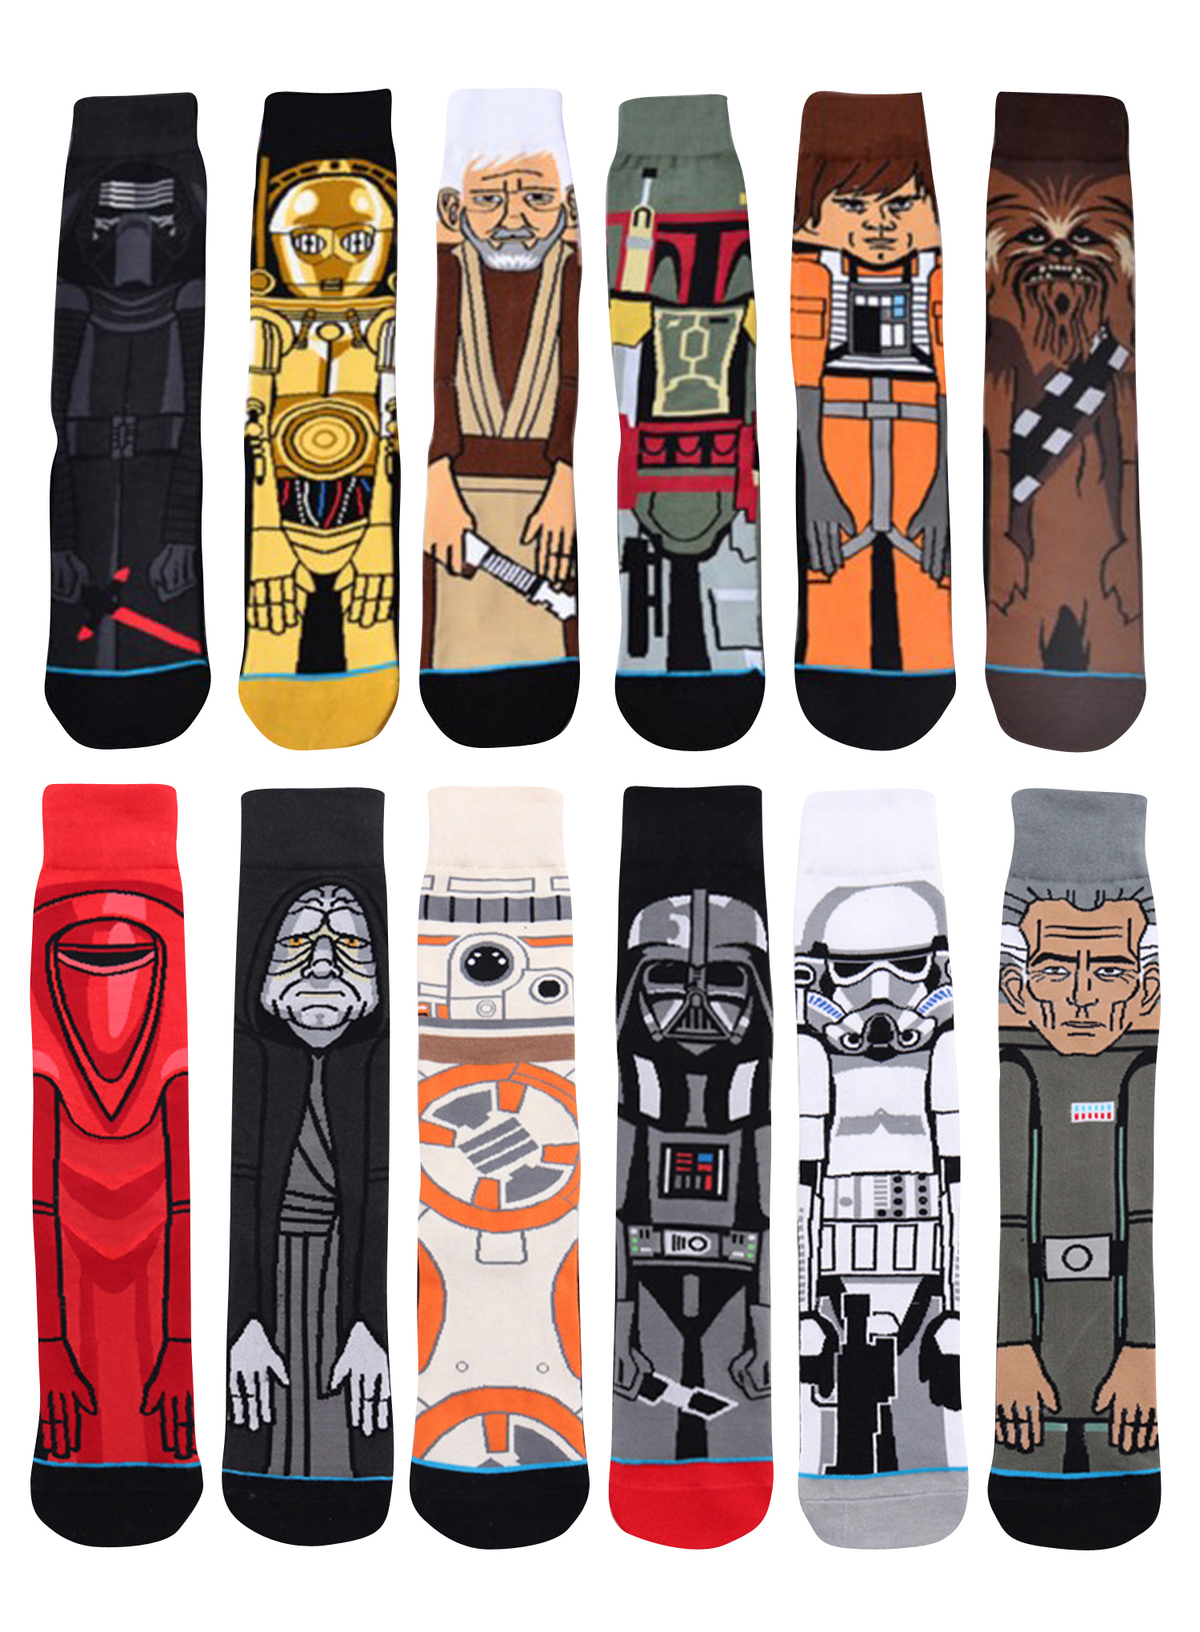 2018Hot Movie Star Wars Stockings For Adult Men Women Jedi Order Master Yoda Cosplay Cotton Funny Tide Long Star War Socks 1 Pai